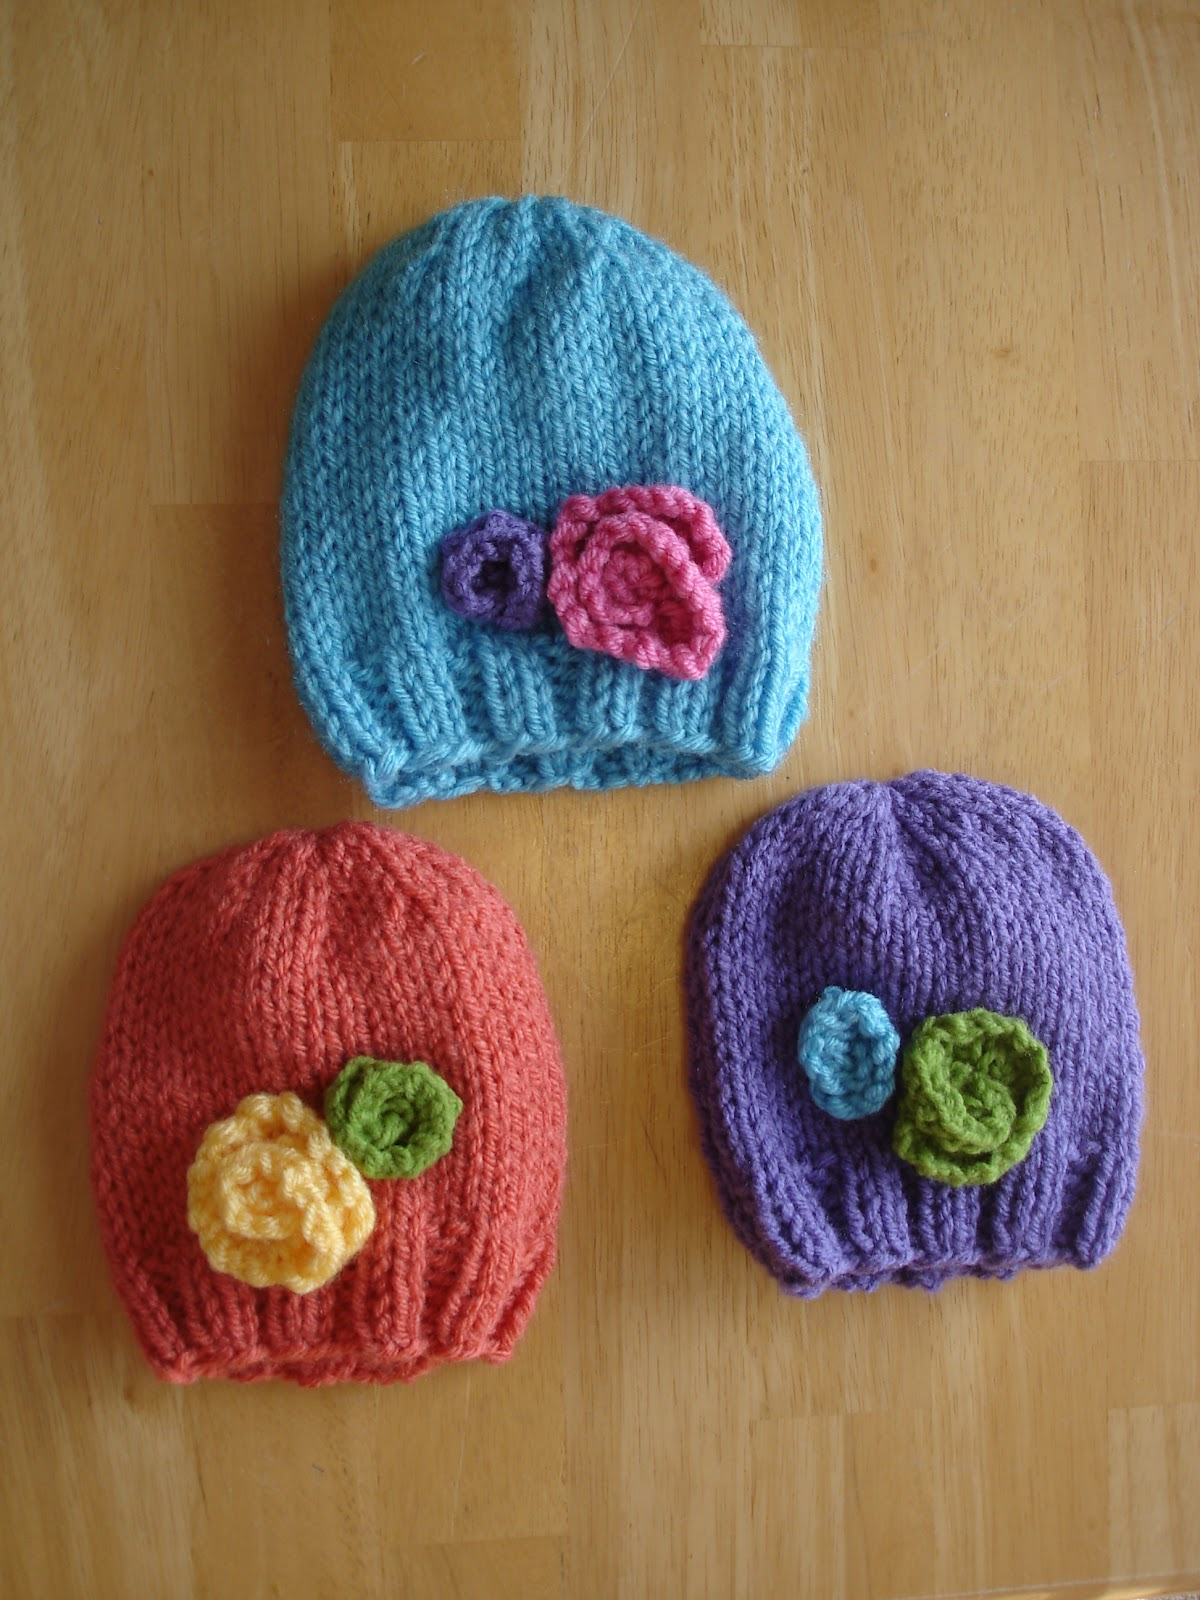 Free Knitting Patterns For Baby Hats Newborns : Fiber Flux: Free Knitting Pattern! Baby In Bloom Hats